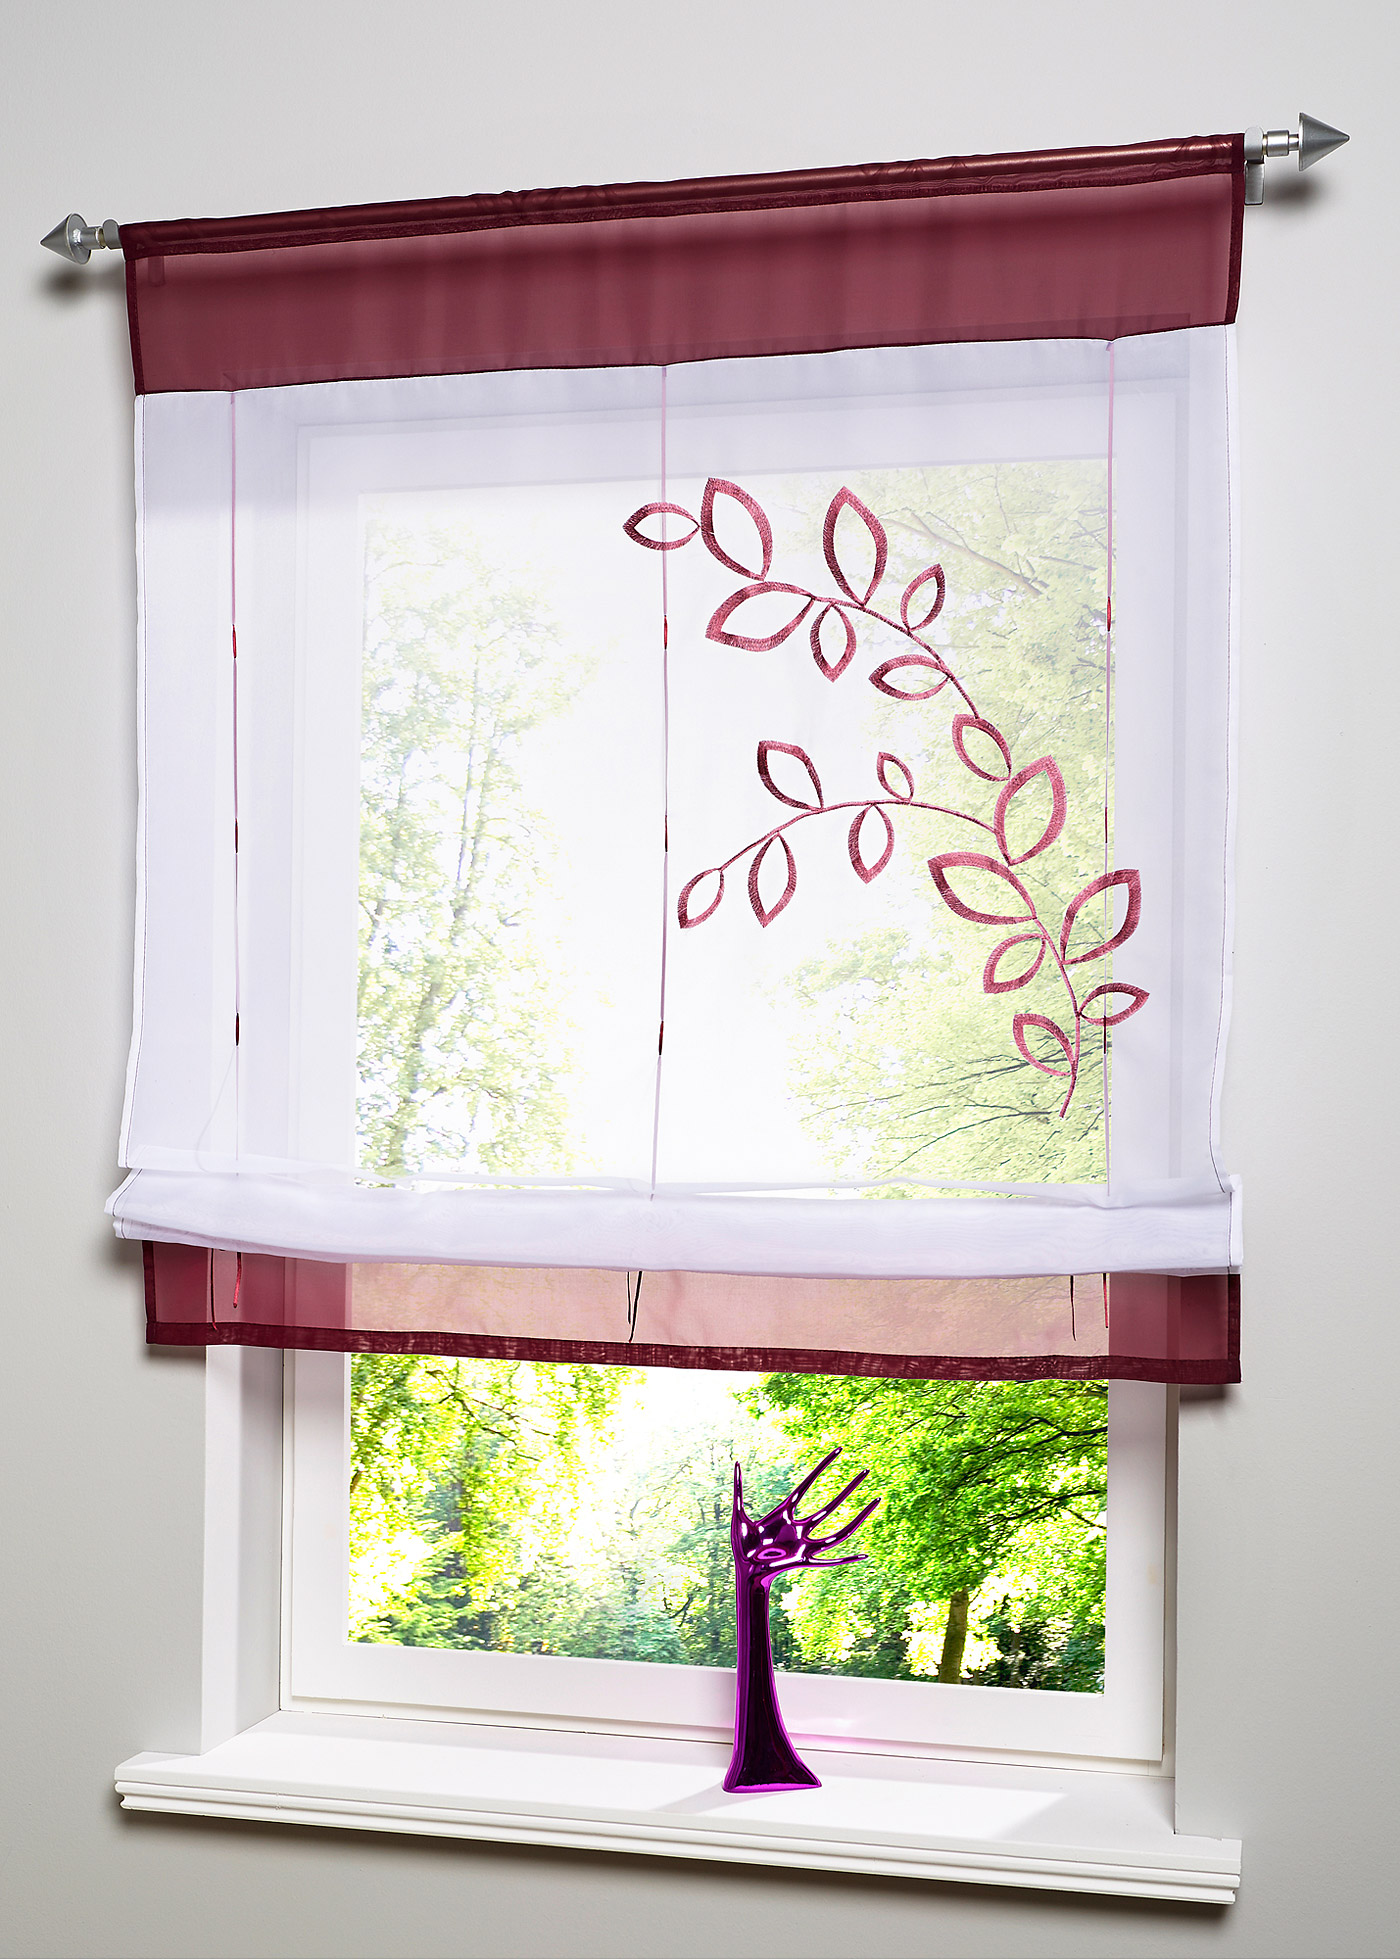 Window Kitchen Bathroom Roll Up Curtain Lifting Rome